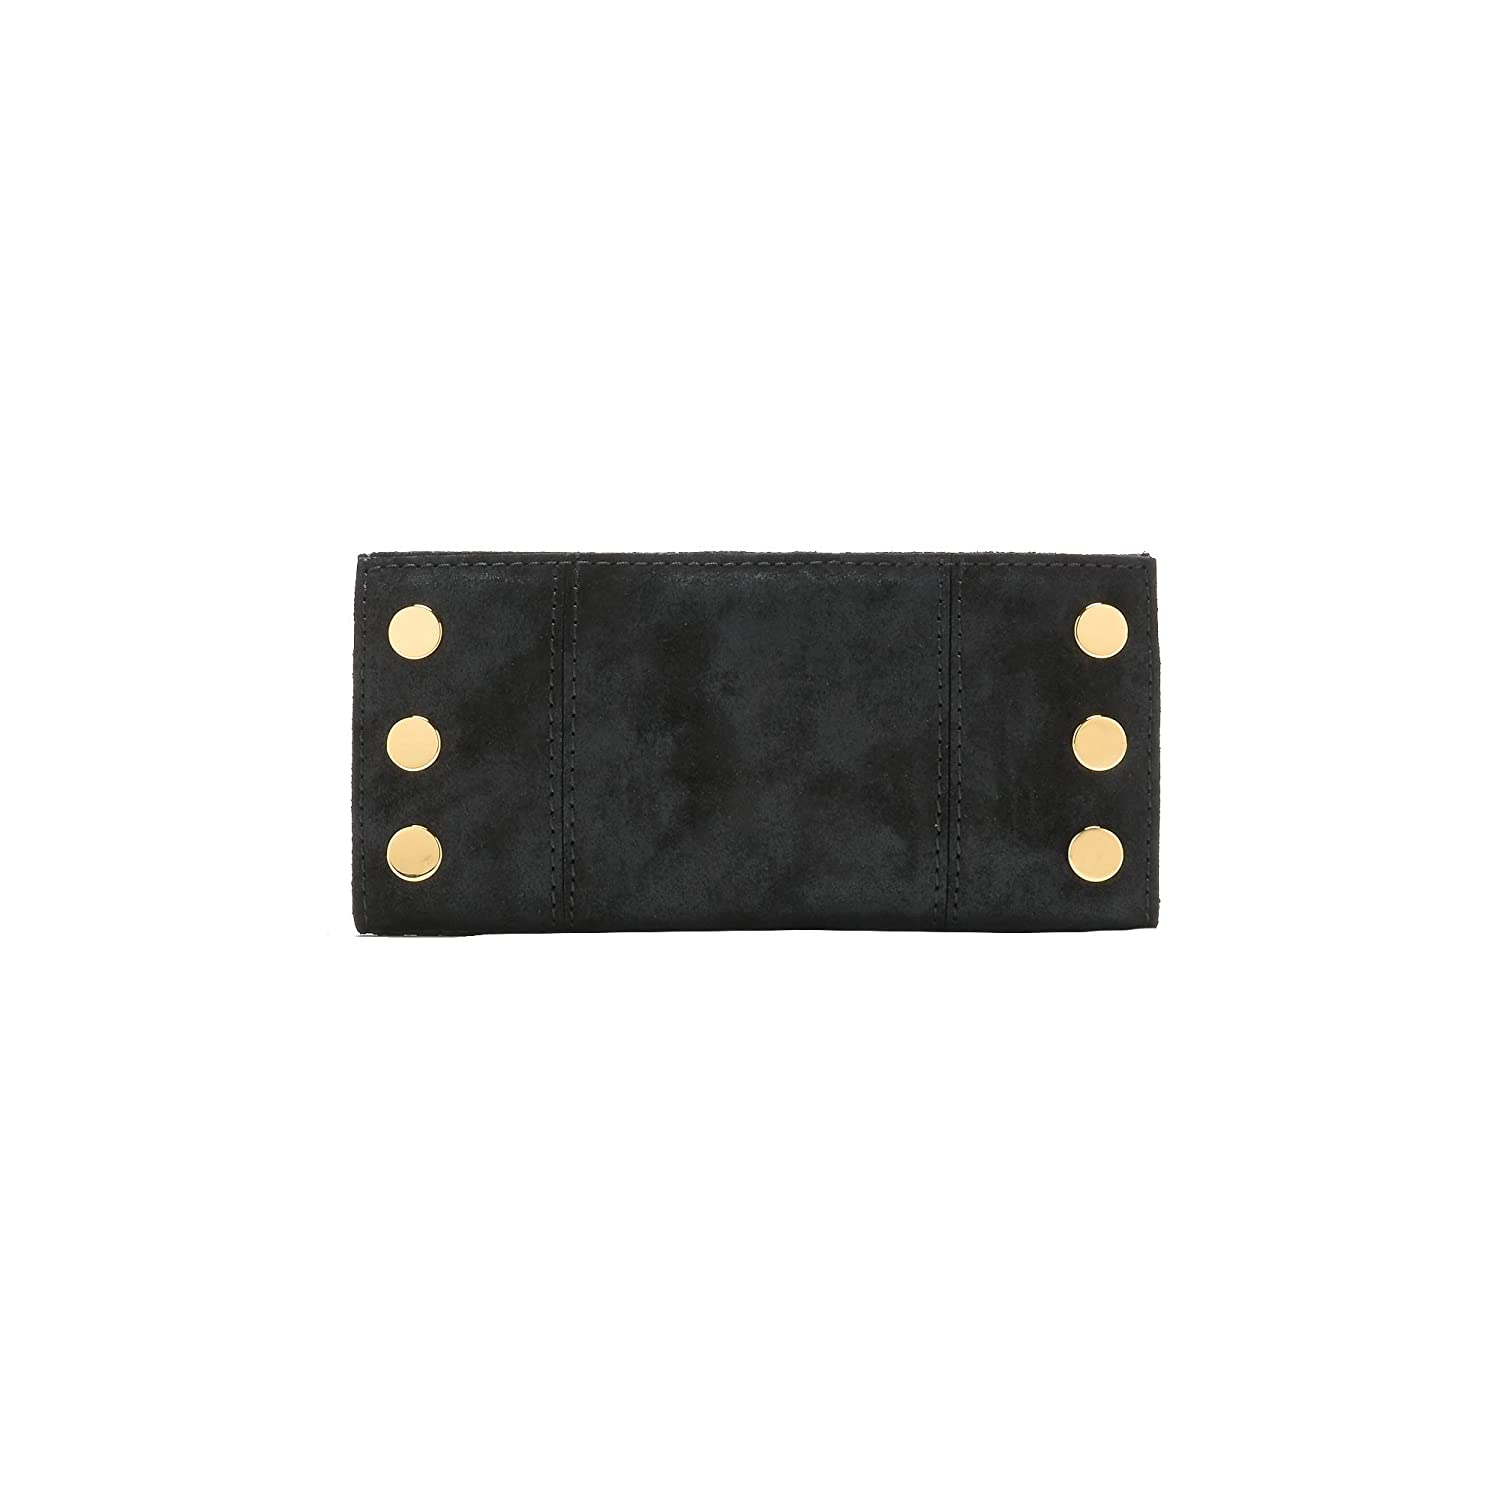 7b96fdfb173f Hammitt Women's 110 North Wallet Space Buffed Black with Gold ...